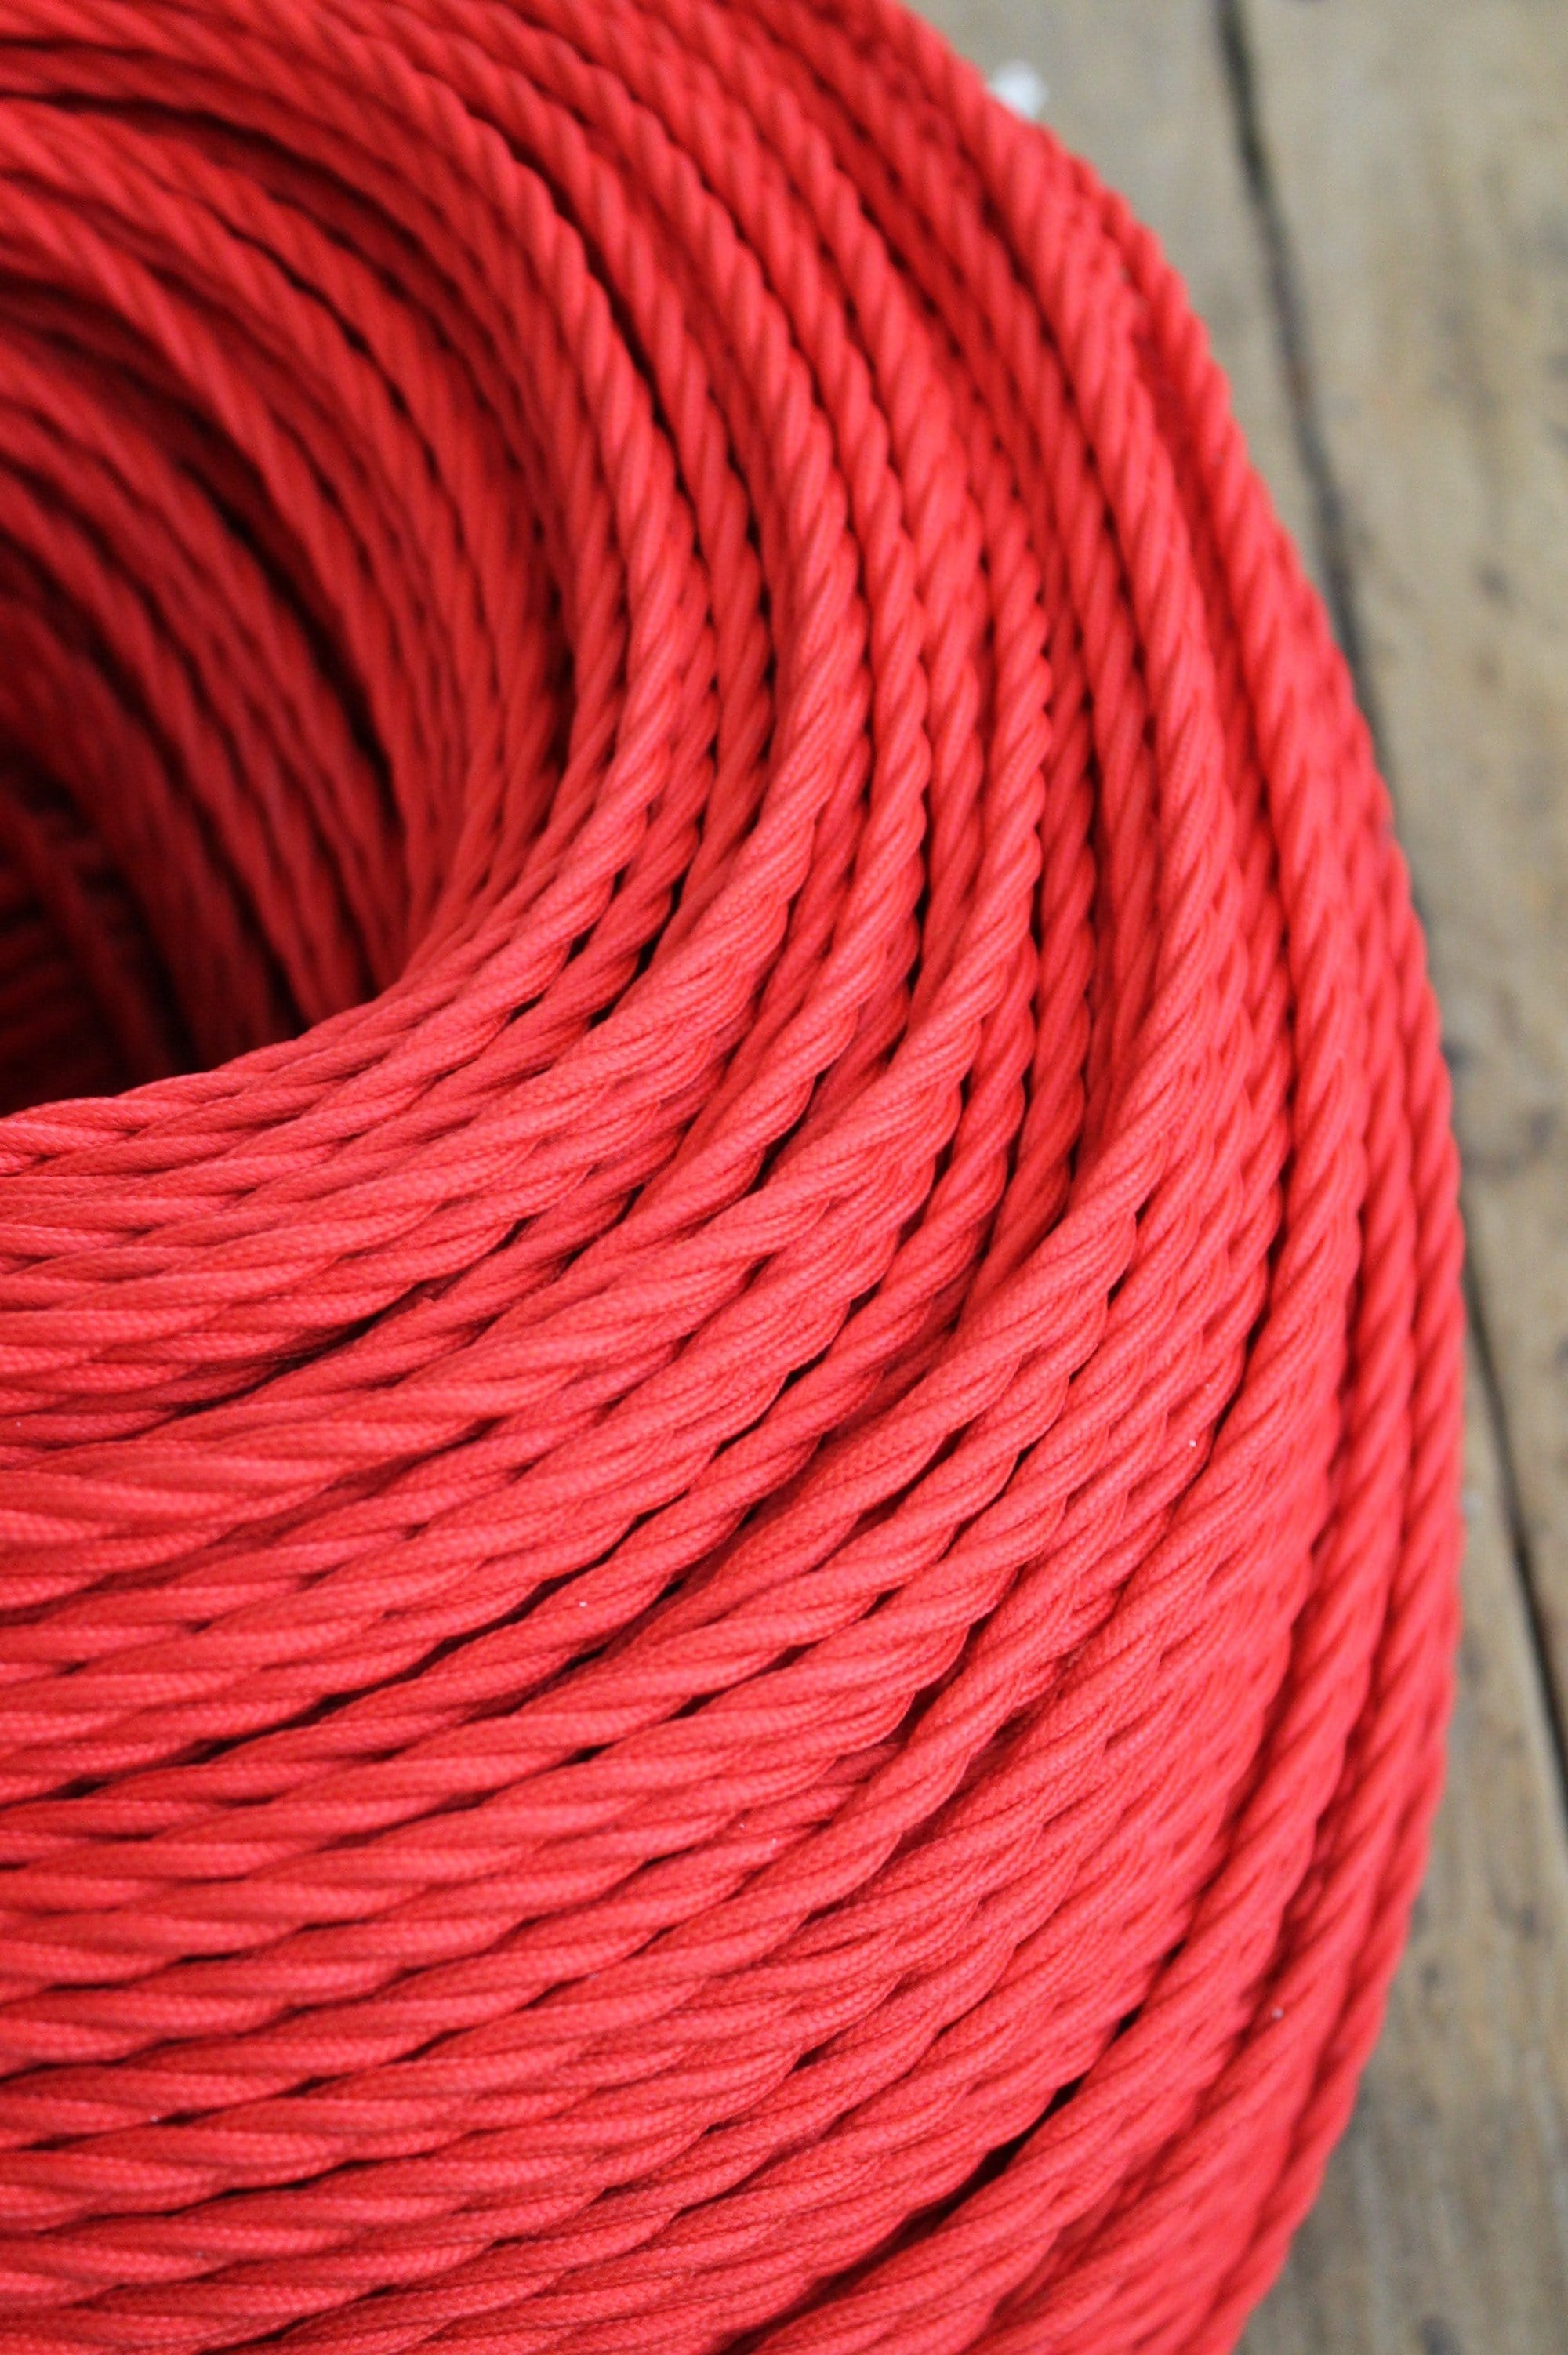 Red twisted braid cord